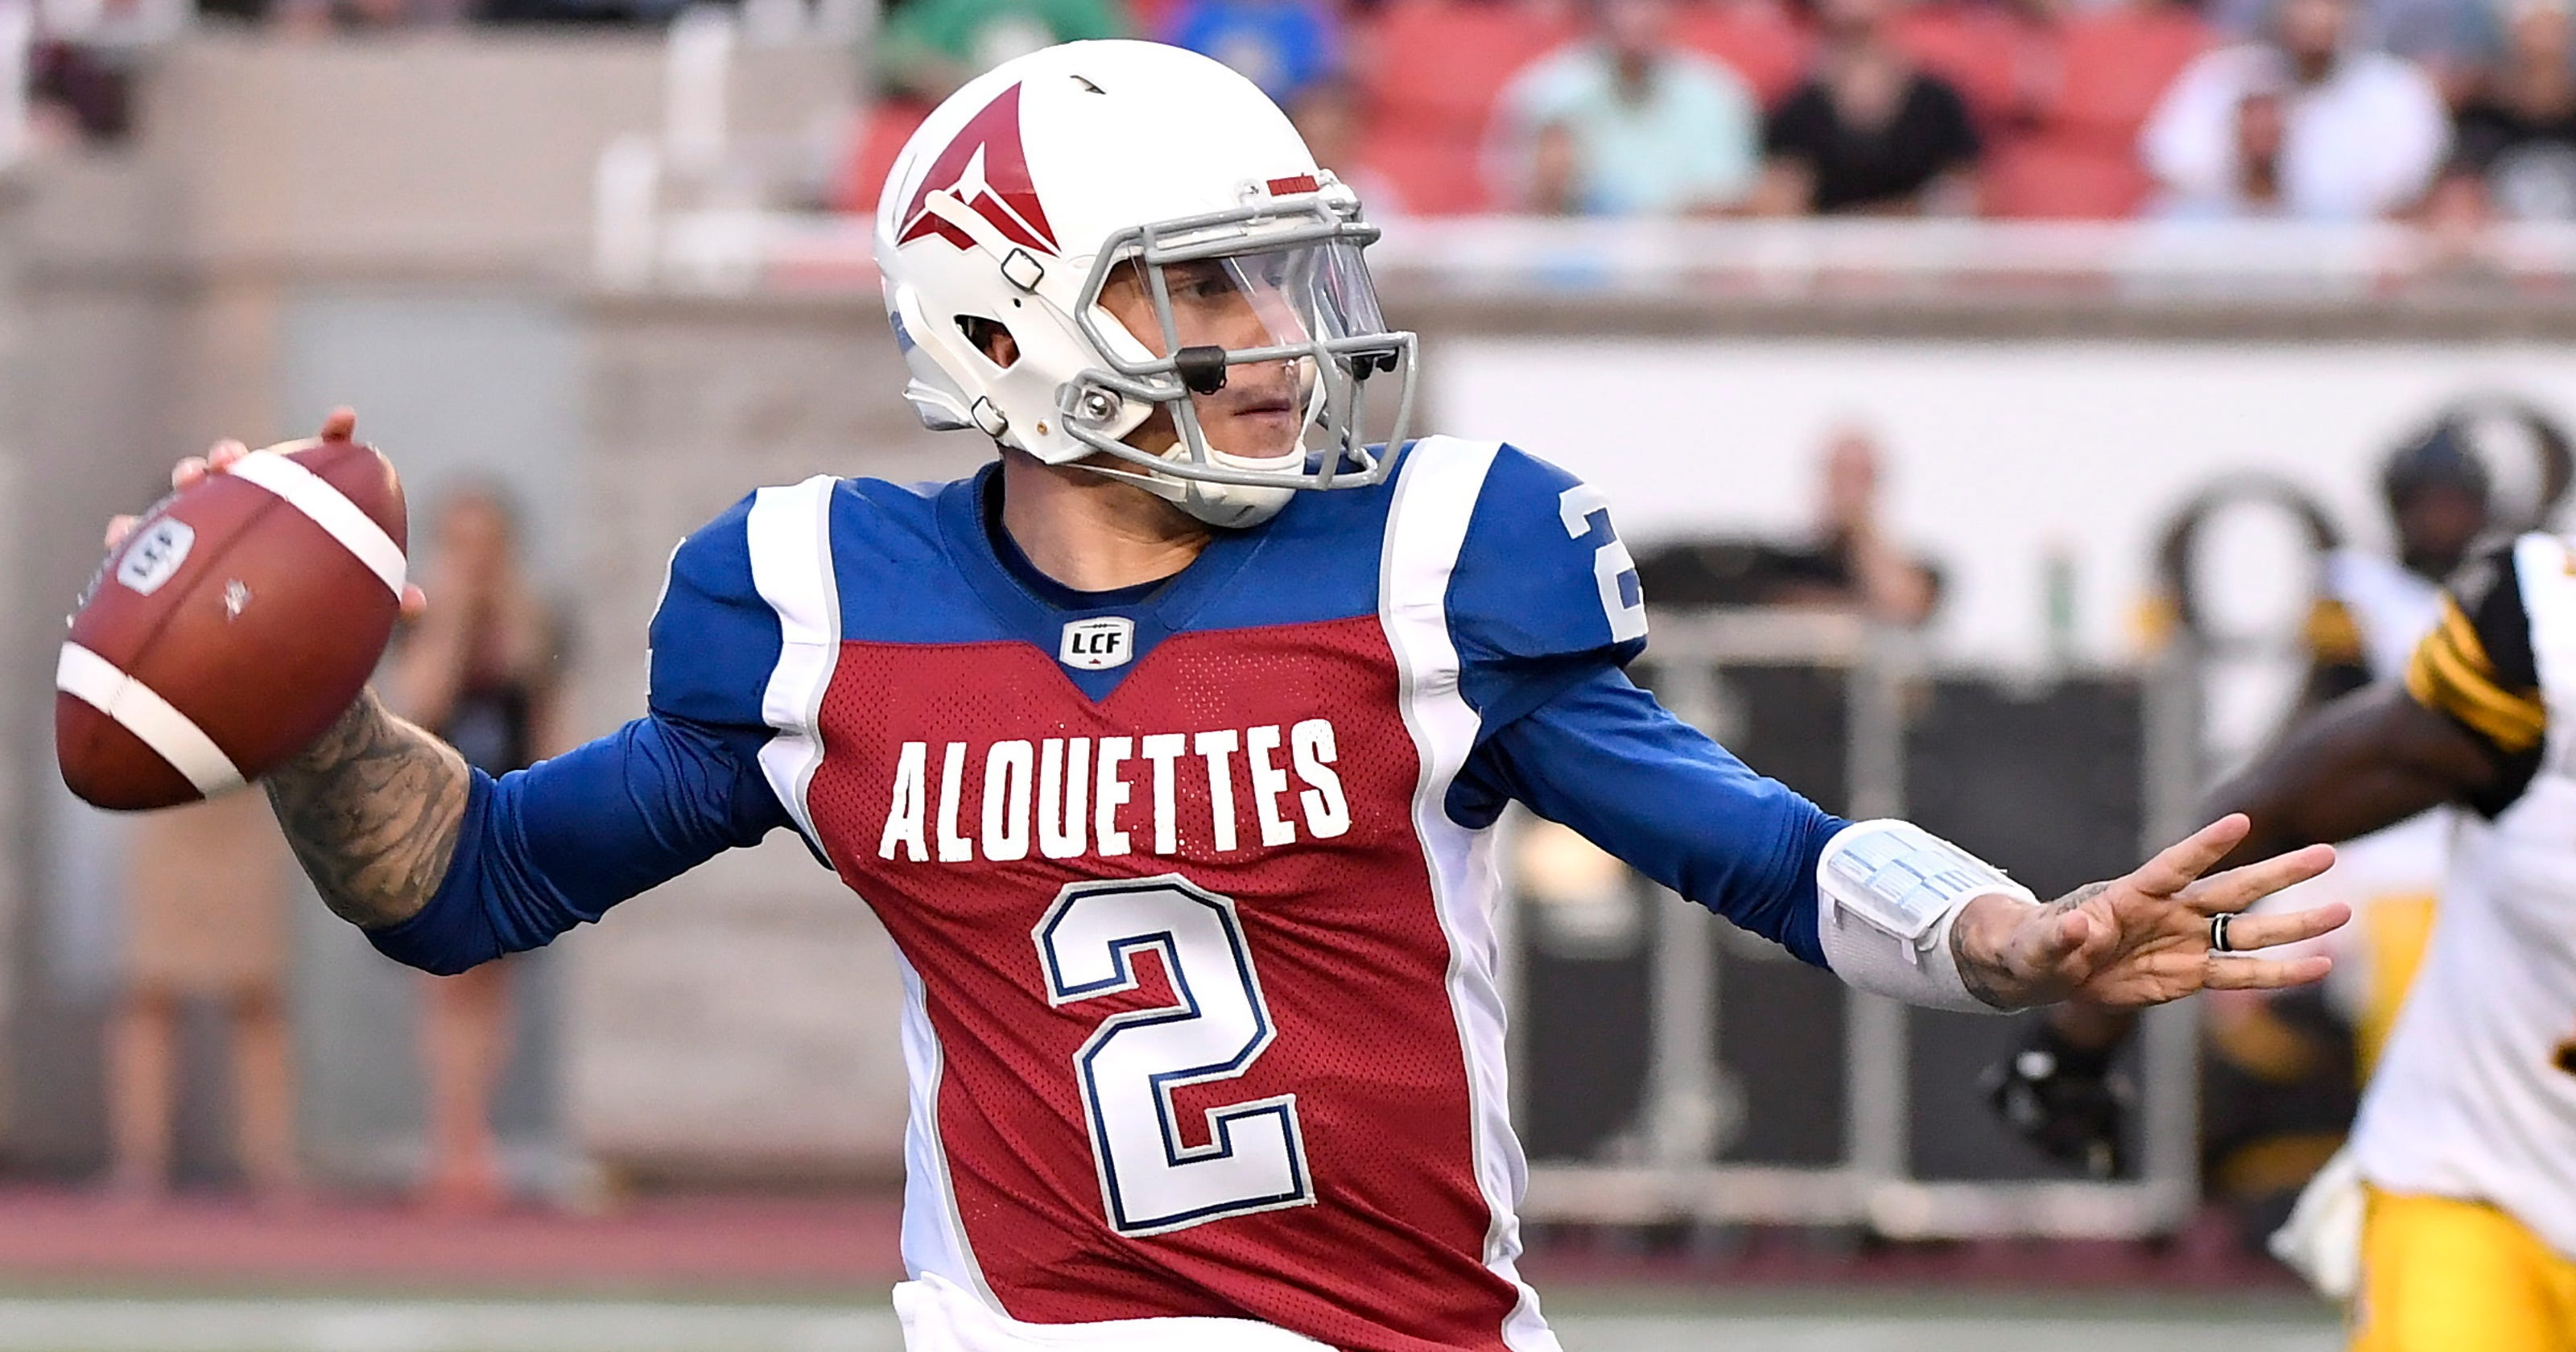 97d76a7b52 Johnny Manziel has rough CFL debut for Montreal Alouettes